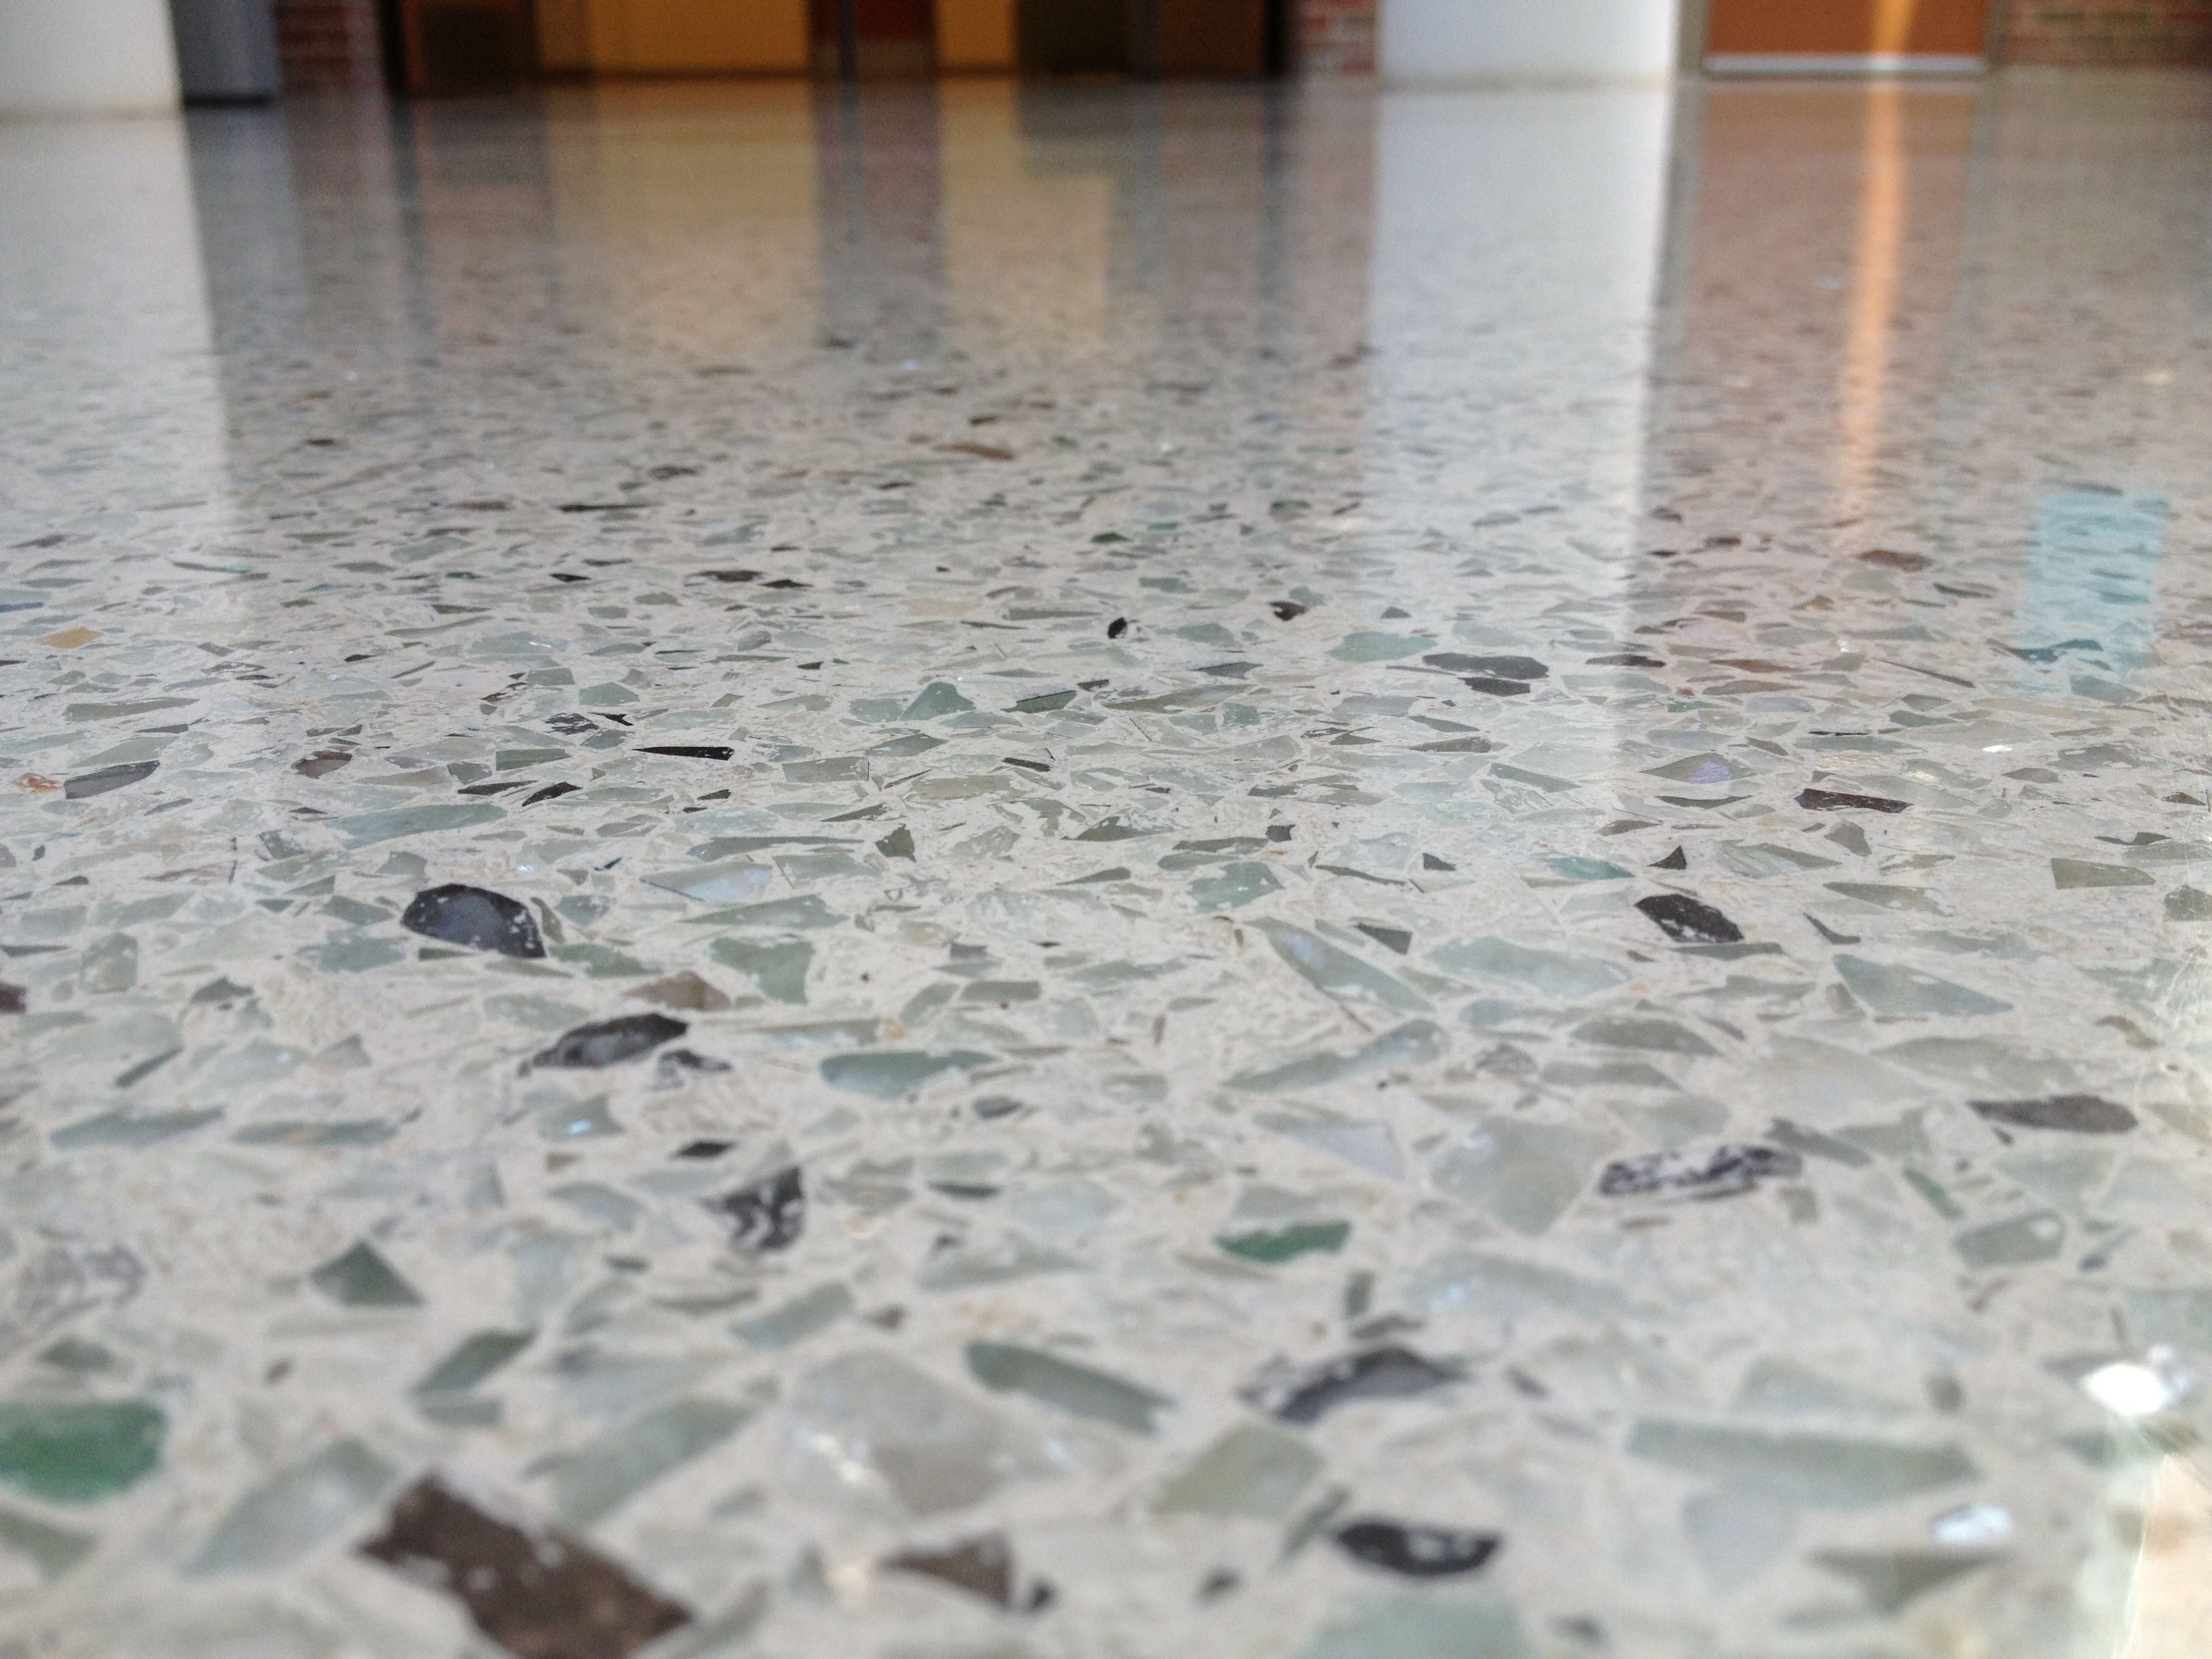 com floors terrazzofloorcleaningservicebocaraton youtube watch floor terrazzocleaningbocaraton cleaning raton terrazzo boca pin v s terrazzofloorcleaningbocaraton